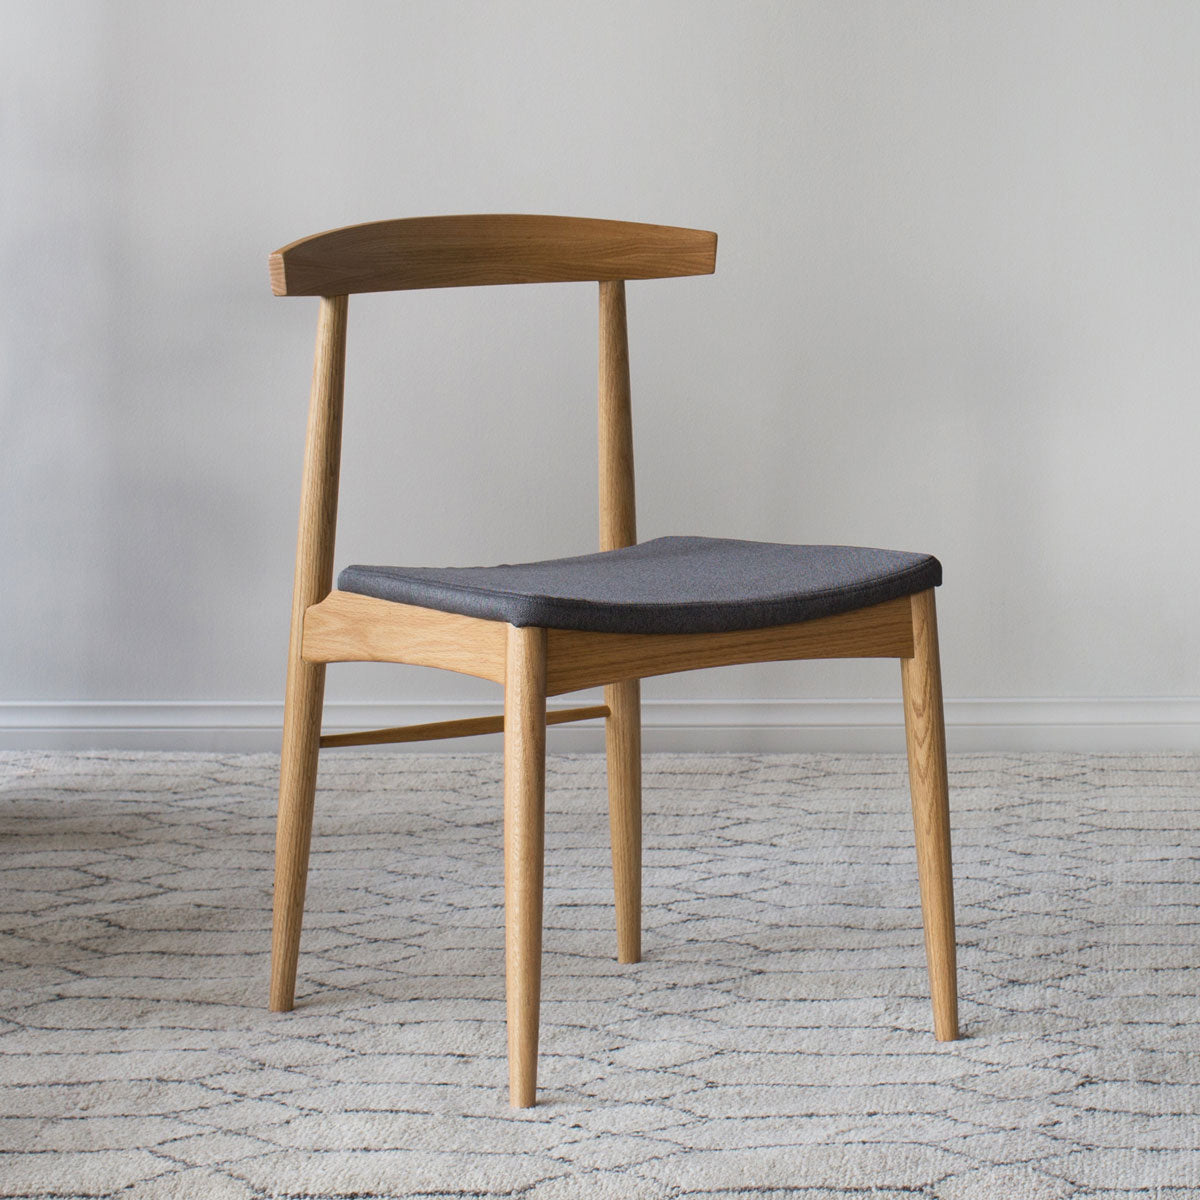 buy Dining Chair 250 by Feelgood Designs - Designed by Takahashi Asako online